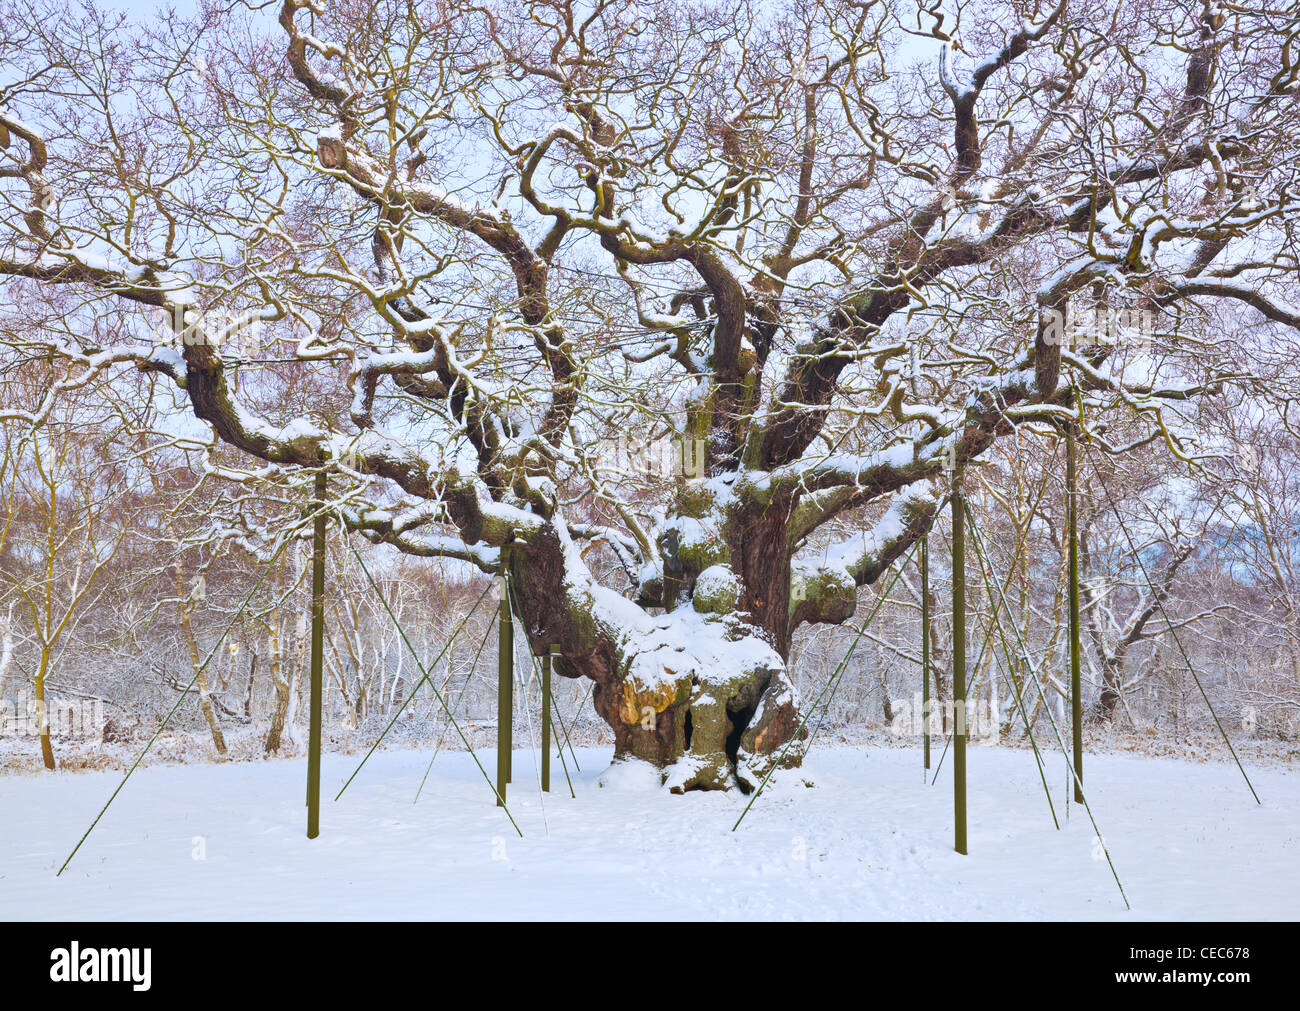 the major oak tree in the fresh snow sherwood forest country park edwinstowe nottinghamshire england uk gb eu europe - Stock Image